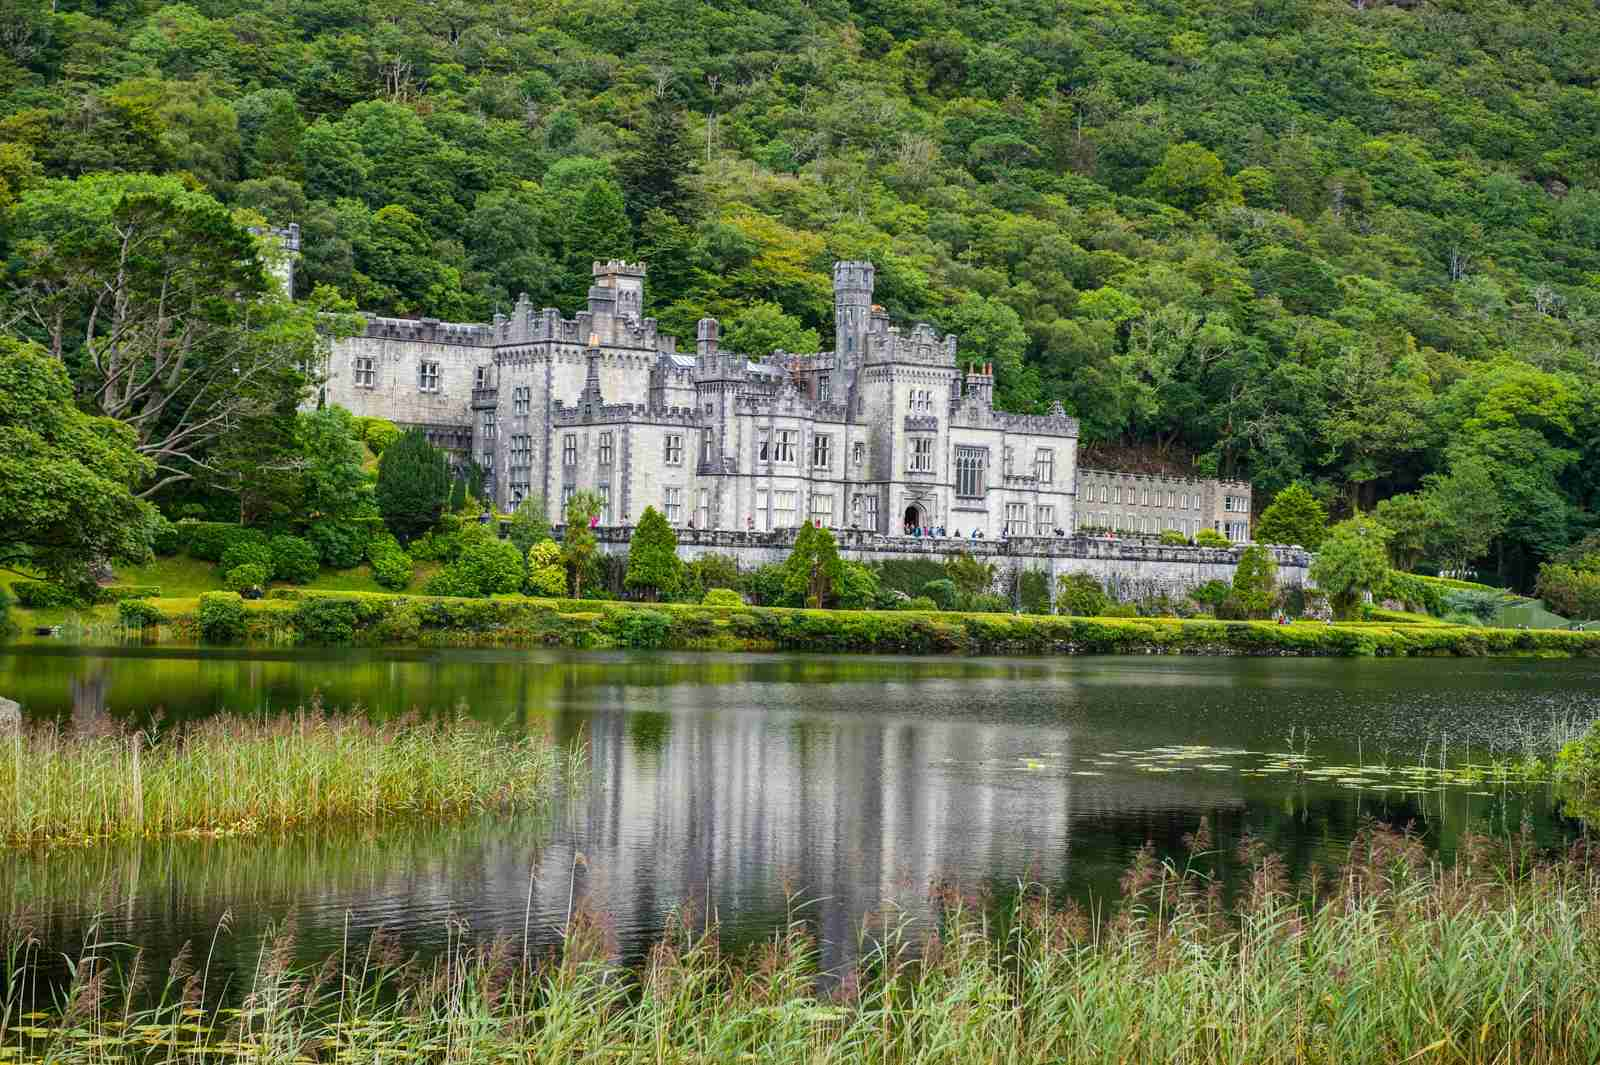 Kylemore Abbey in Connemara National Park. (Photo by Michael Runkel/Getty Images)